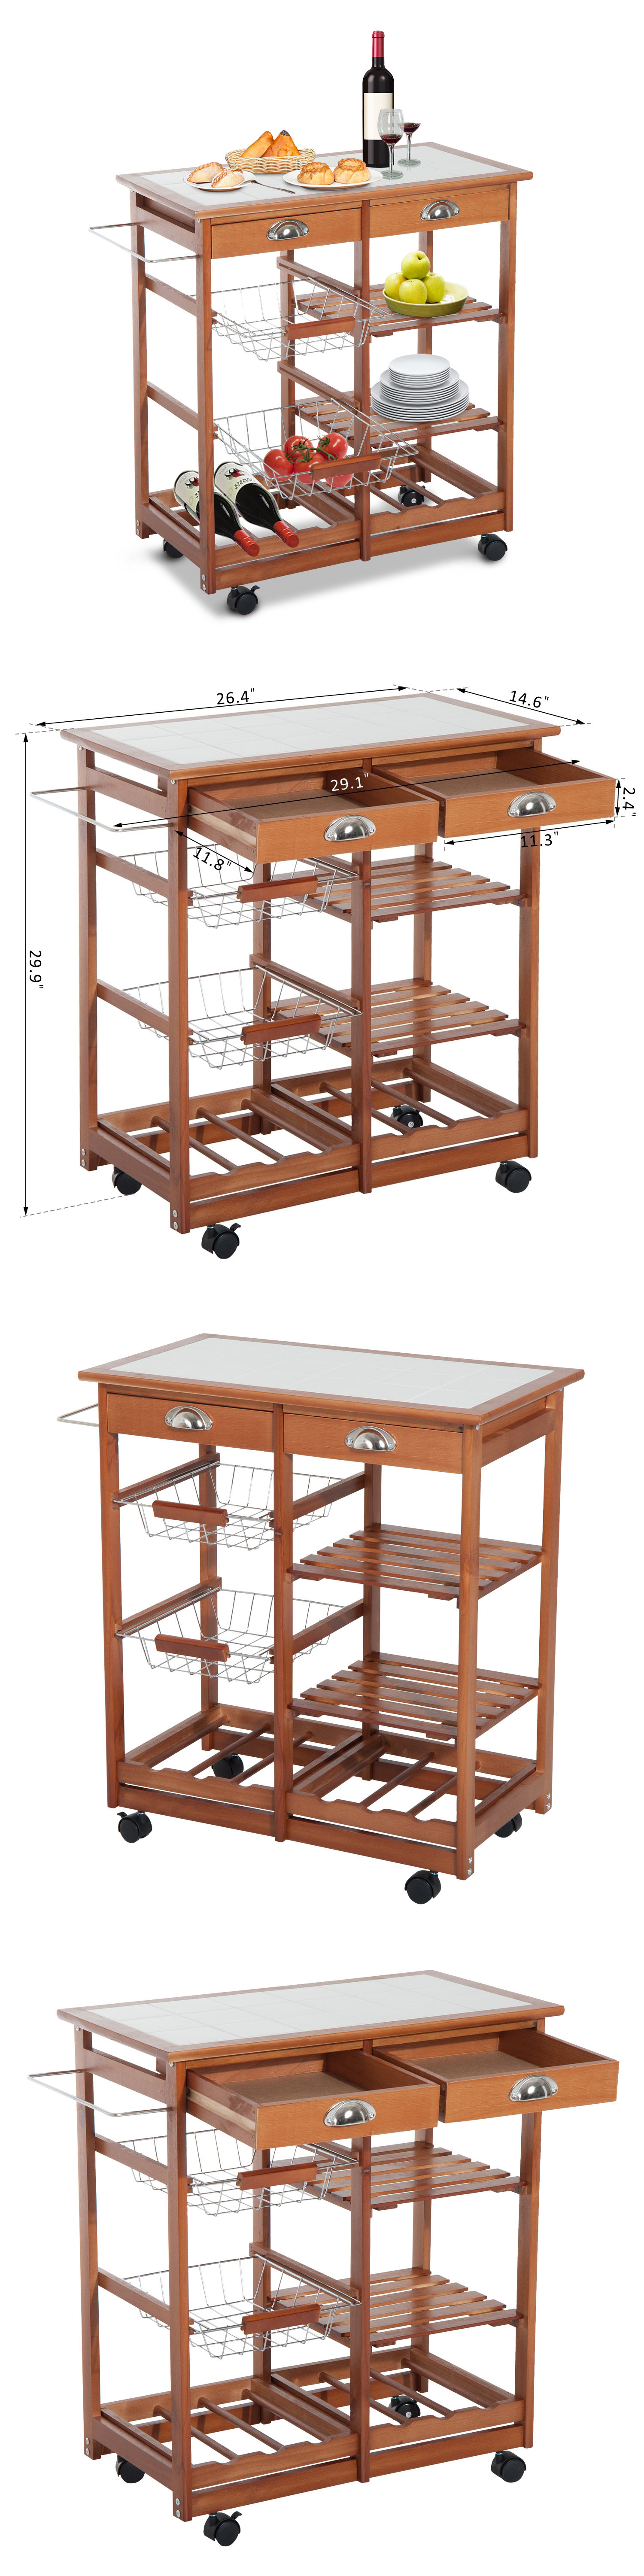 kitchen islands kitchen carts 115753 new 30 kitchen trolley cart